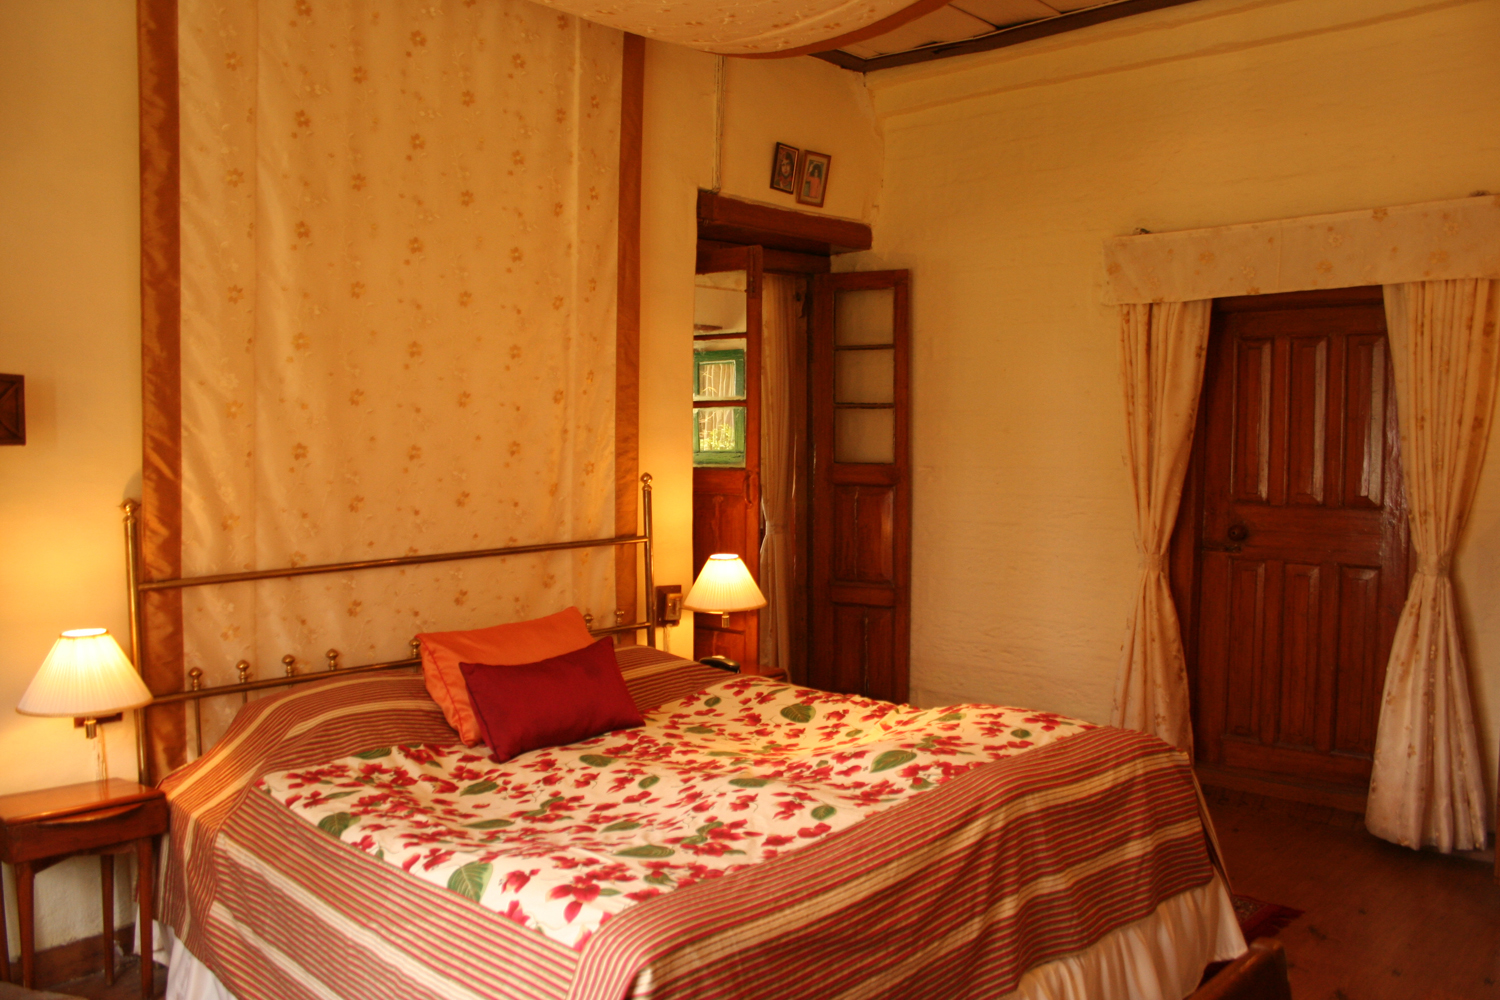 West View Hotel –Ranikhet Ranikhet Luxury Suite 4 West View Hotel Ranikhet